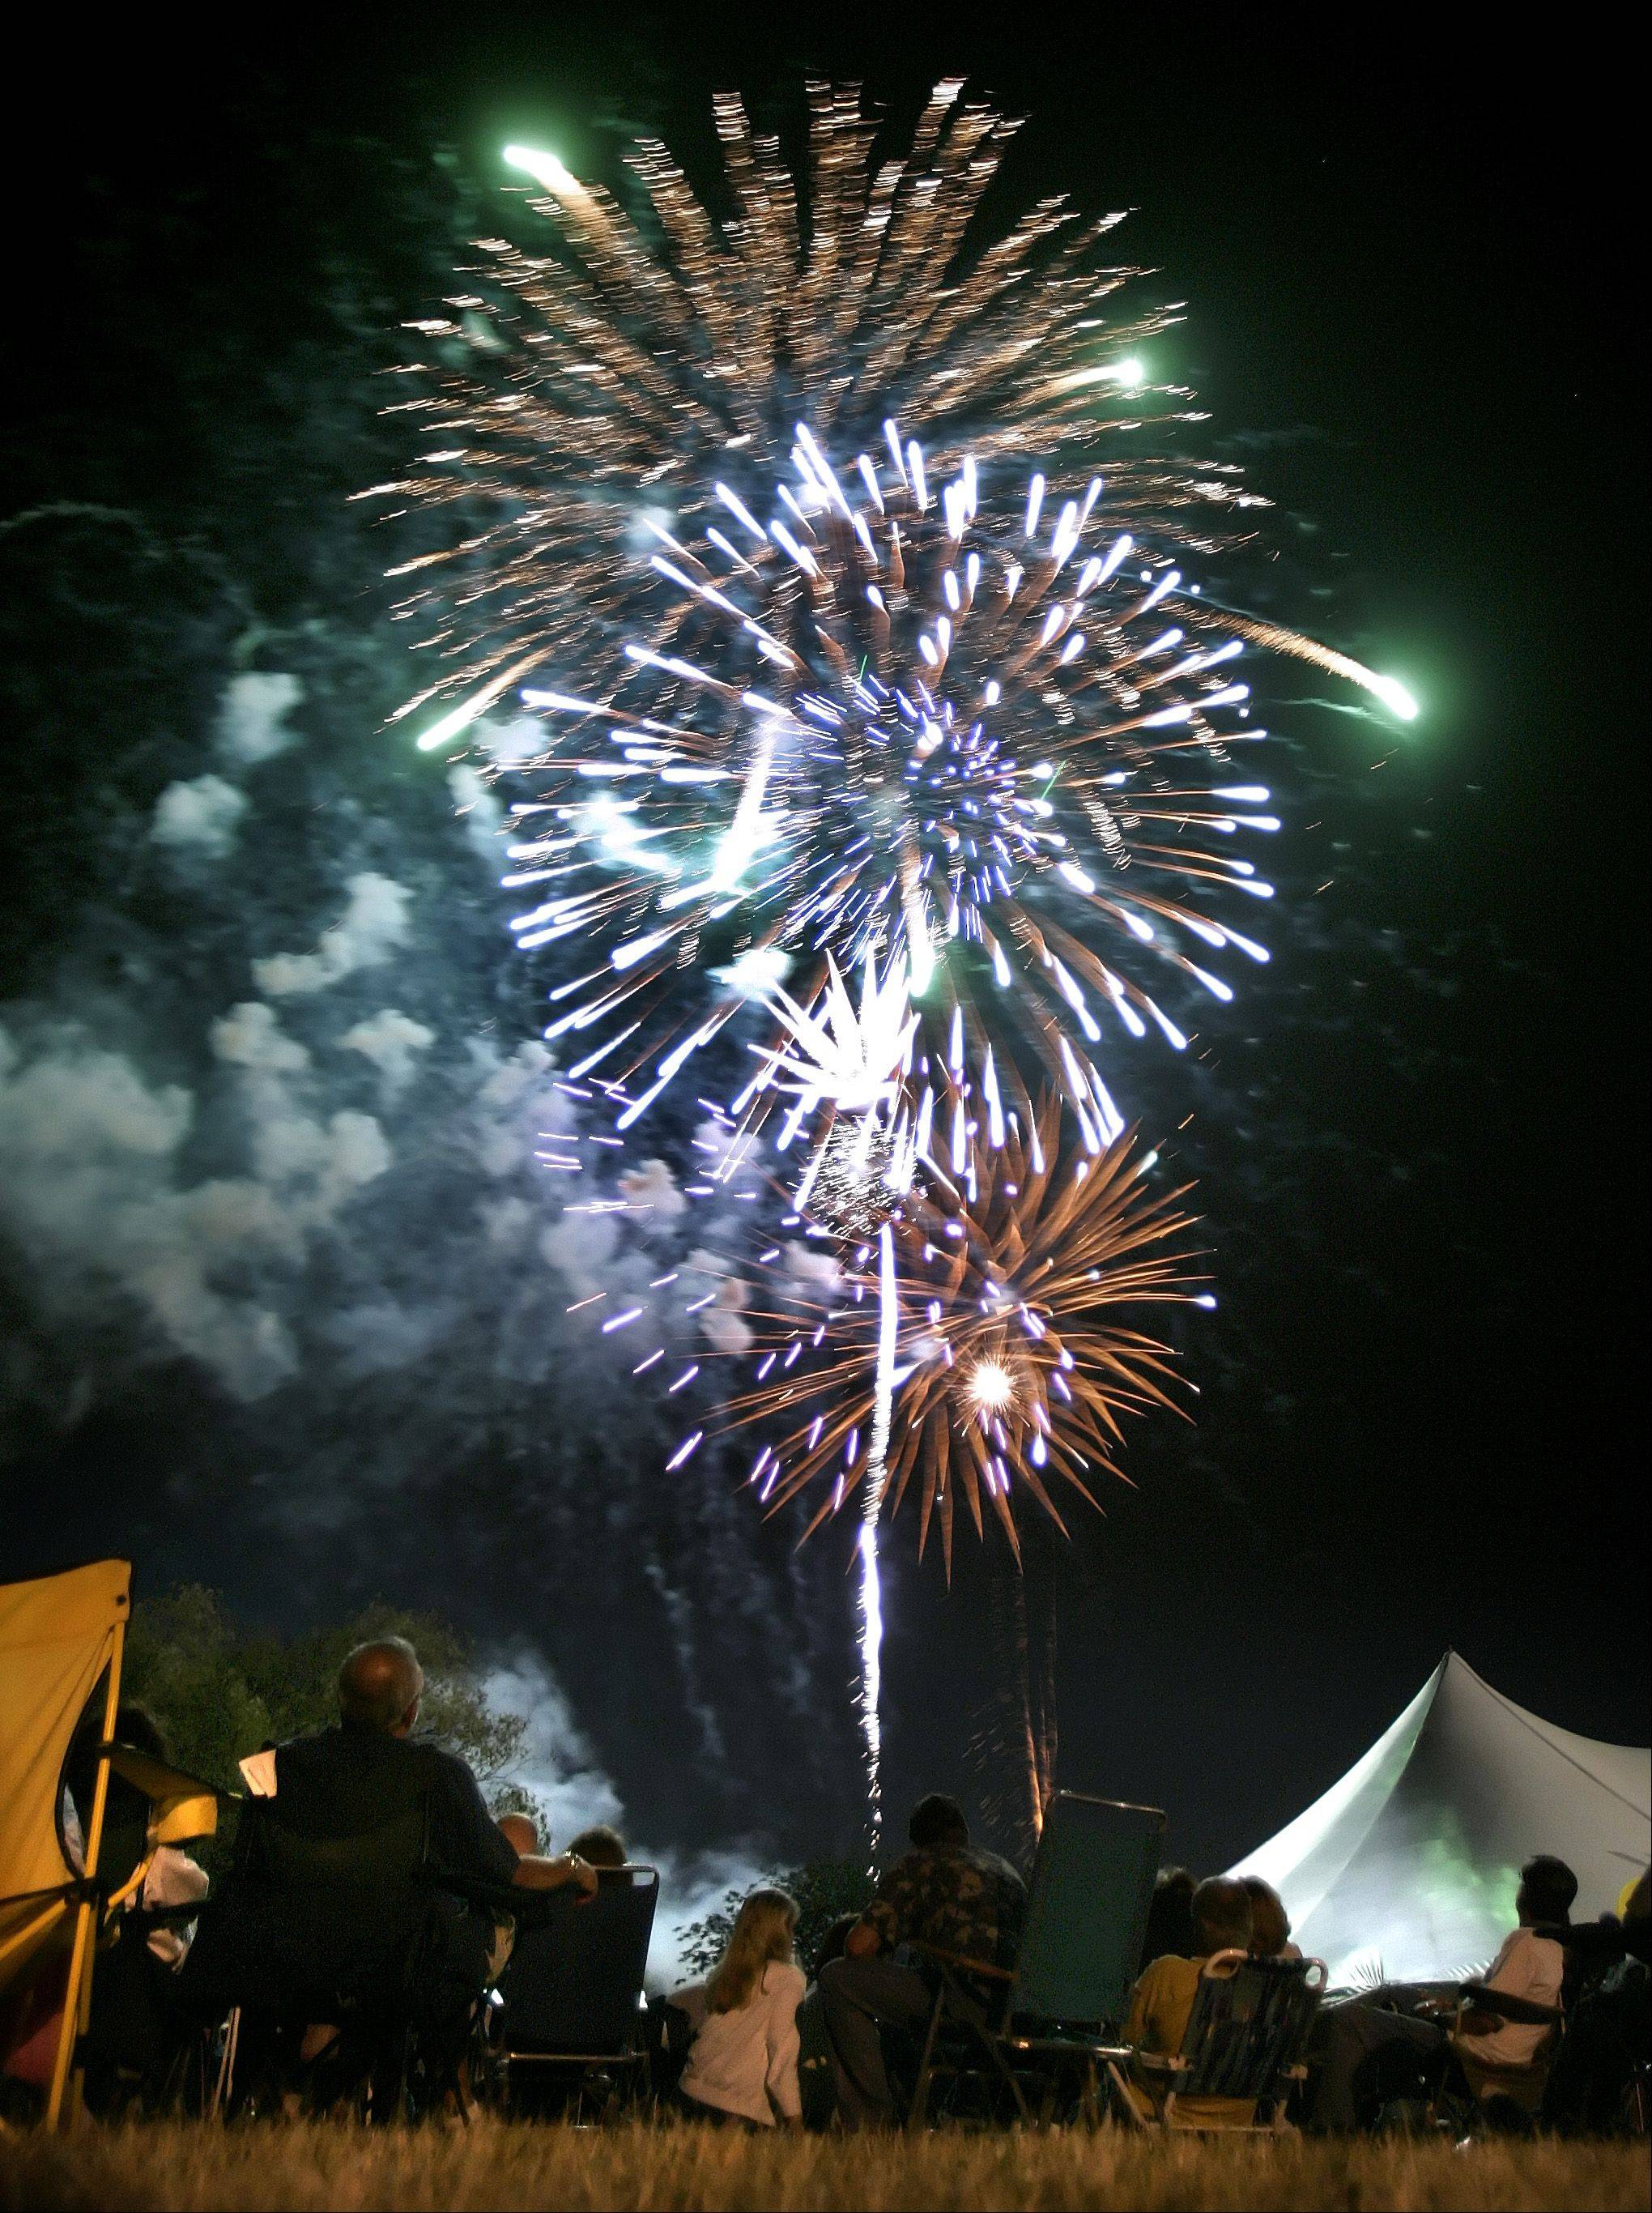 The first day of Vernon Hills Summer Celebration 2005 ended with a spectacular fireworks show.